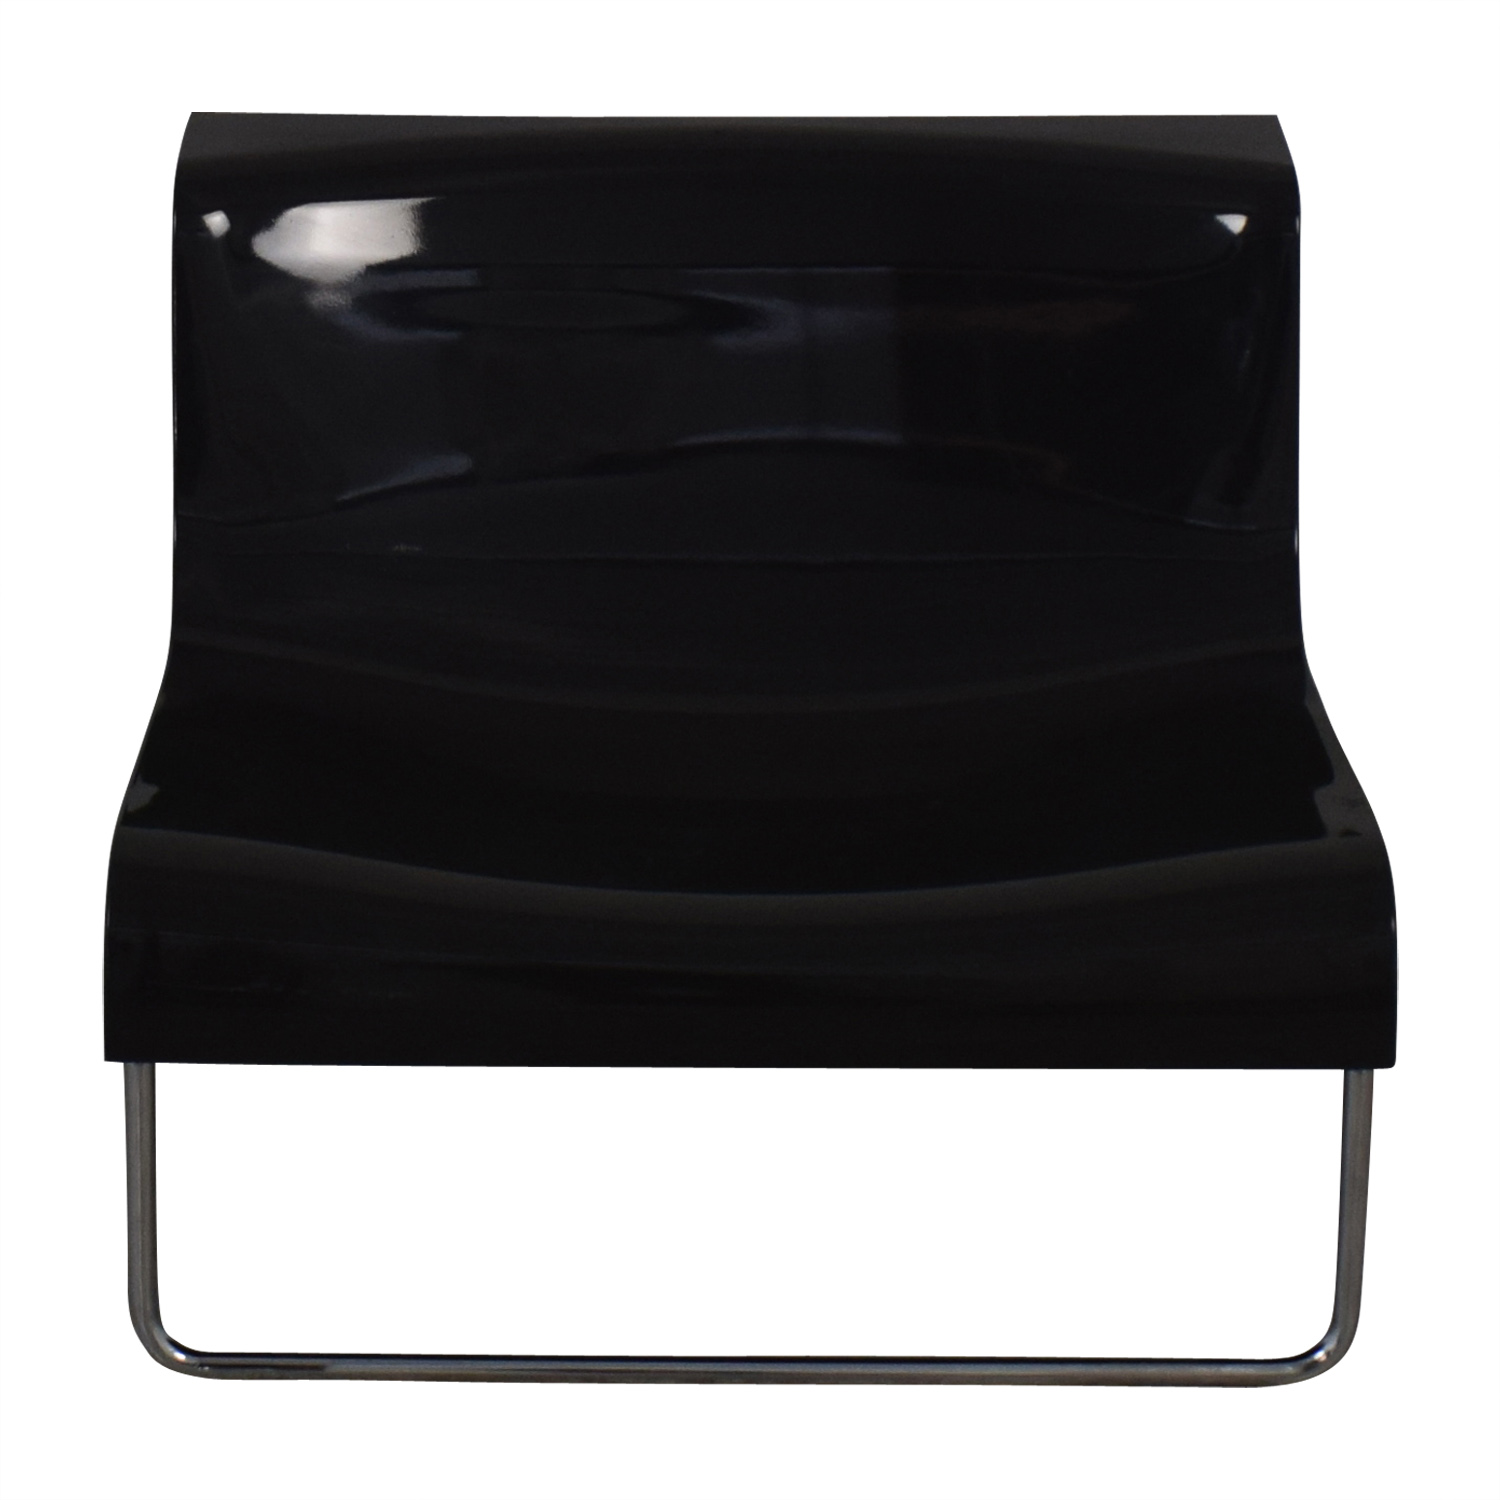 Kartell Kartell Form Chair by Piero Lissoni on sale